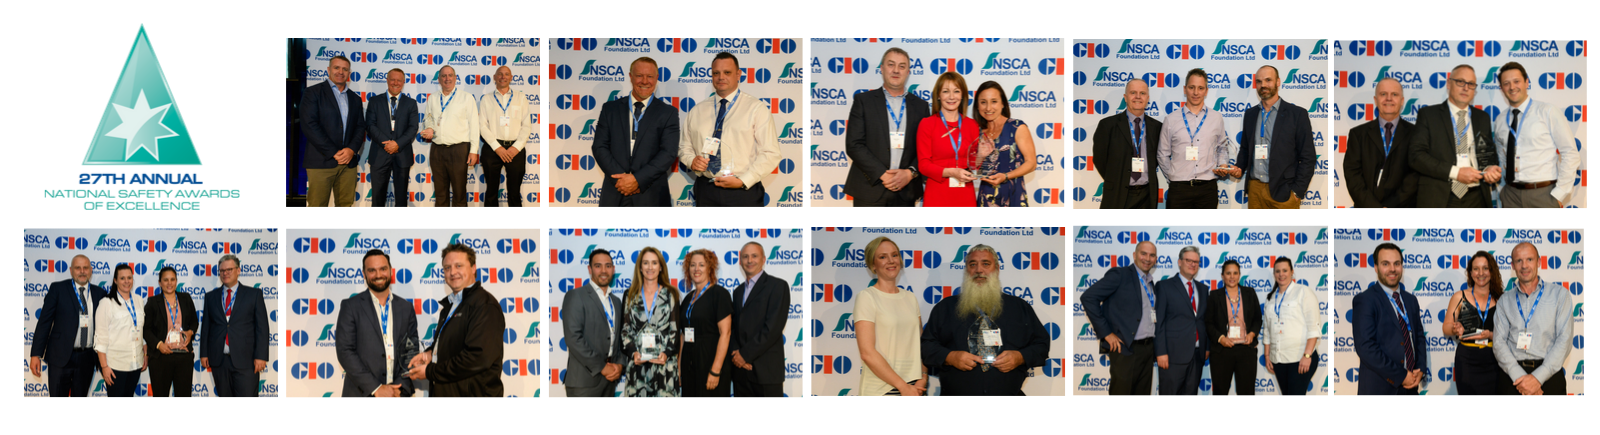 2019 National Safety Awards of Excellence - Winners